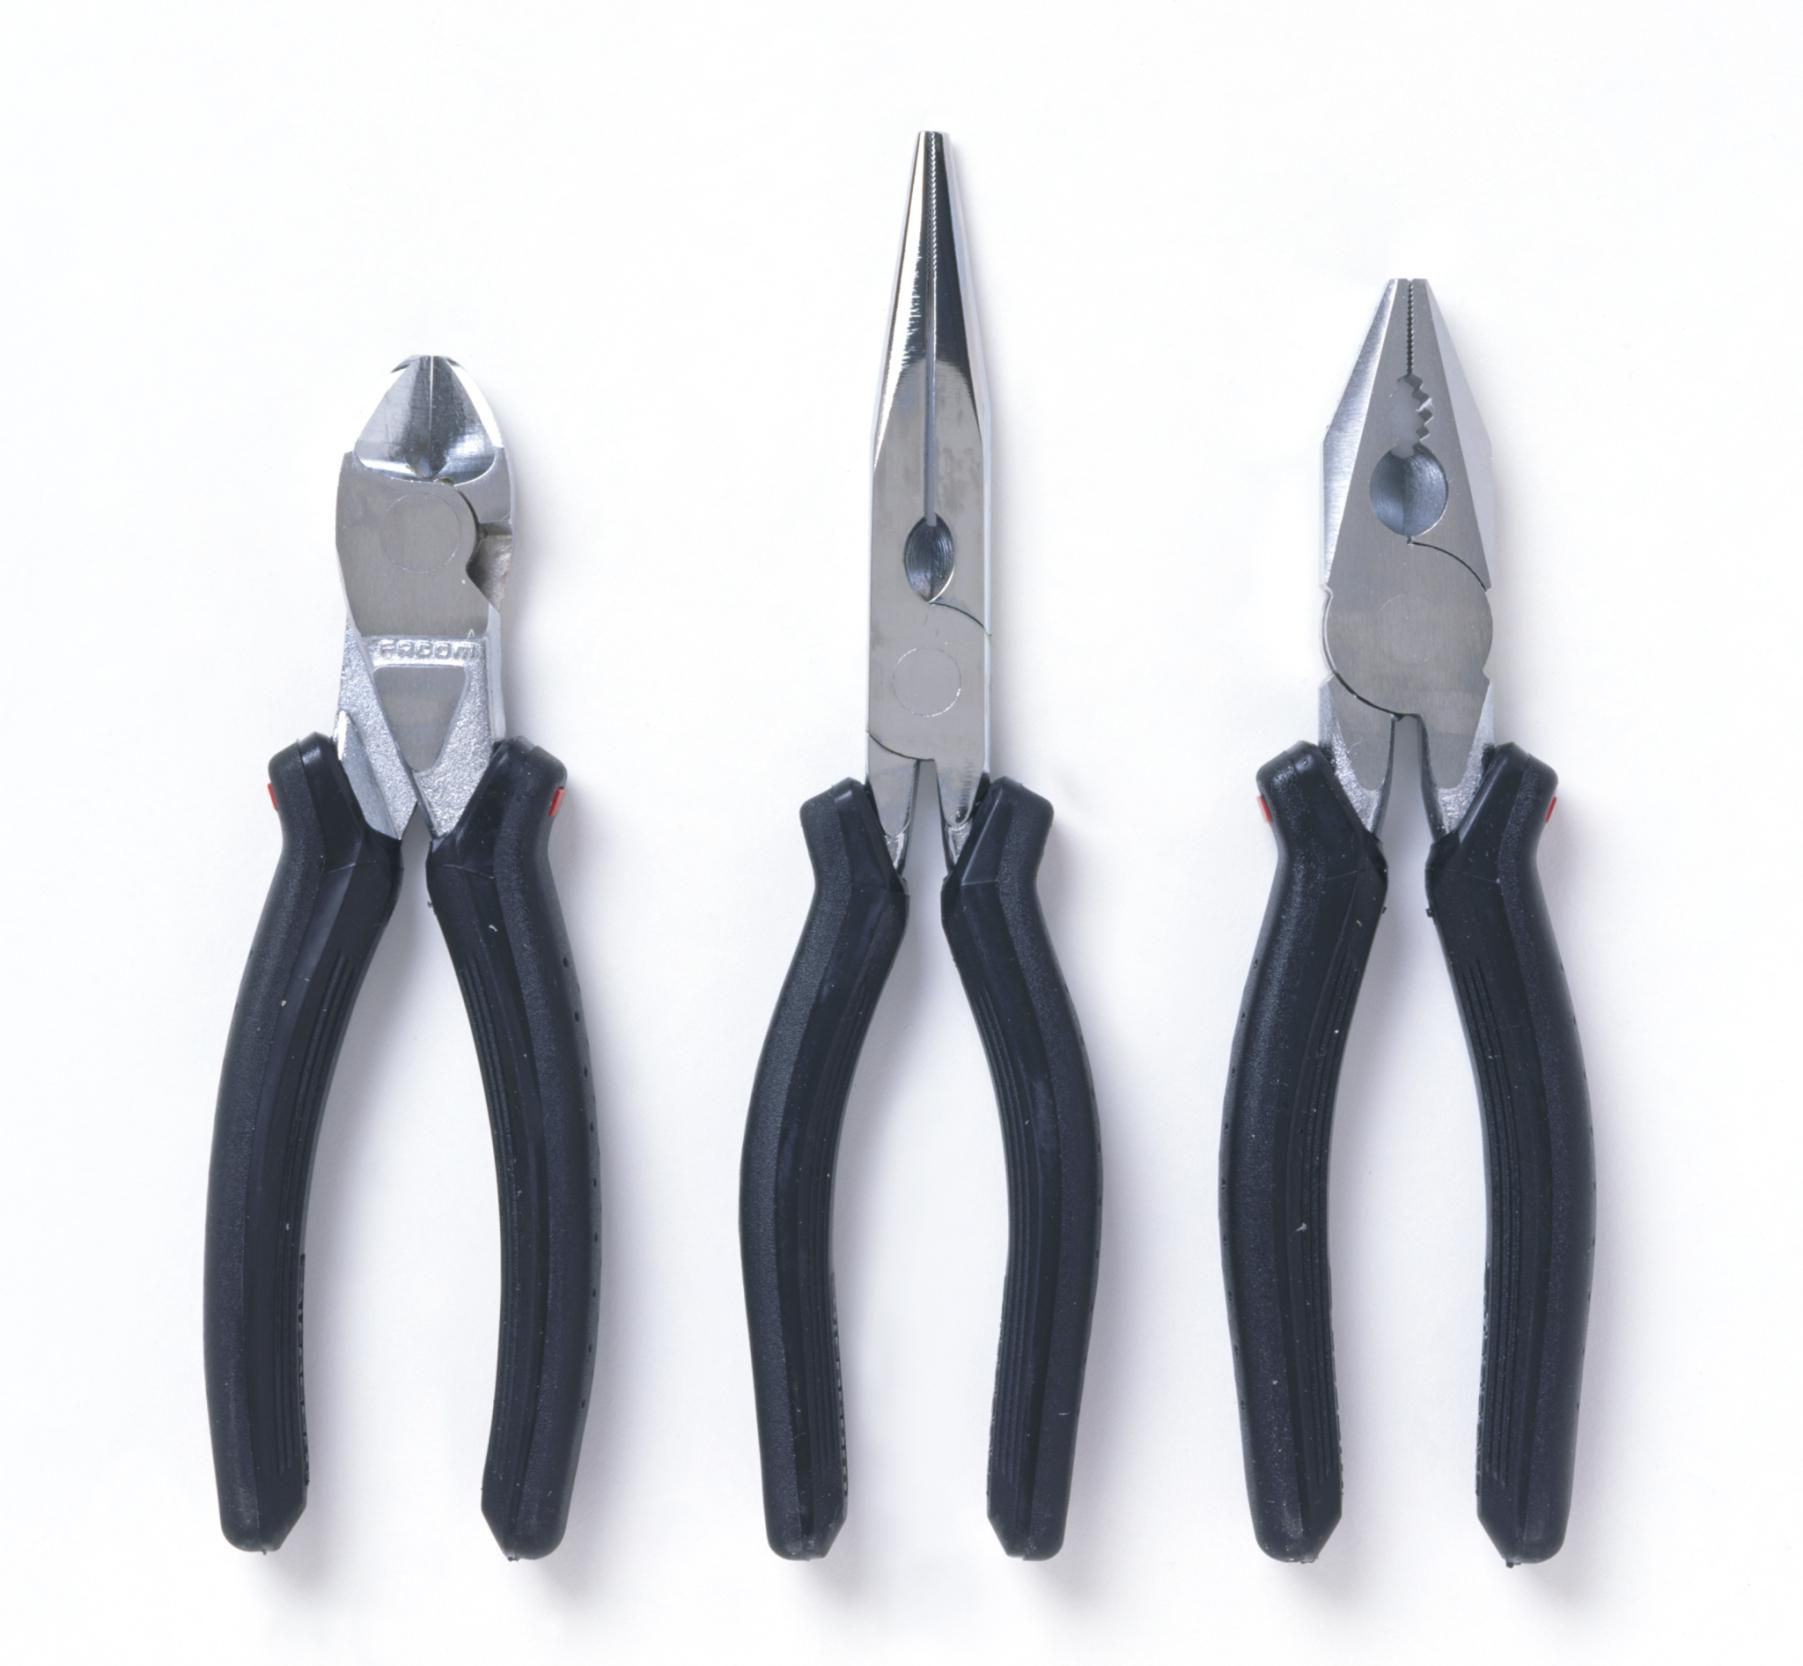 Kitchen Hand Tools And Their Uses With Pictures: Common Pliers Used In Home Repair